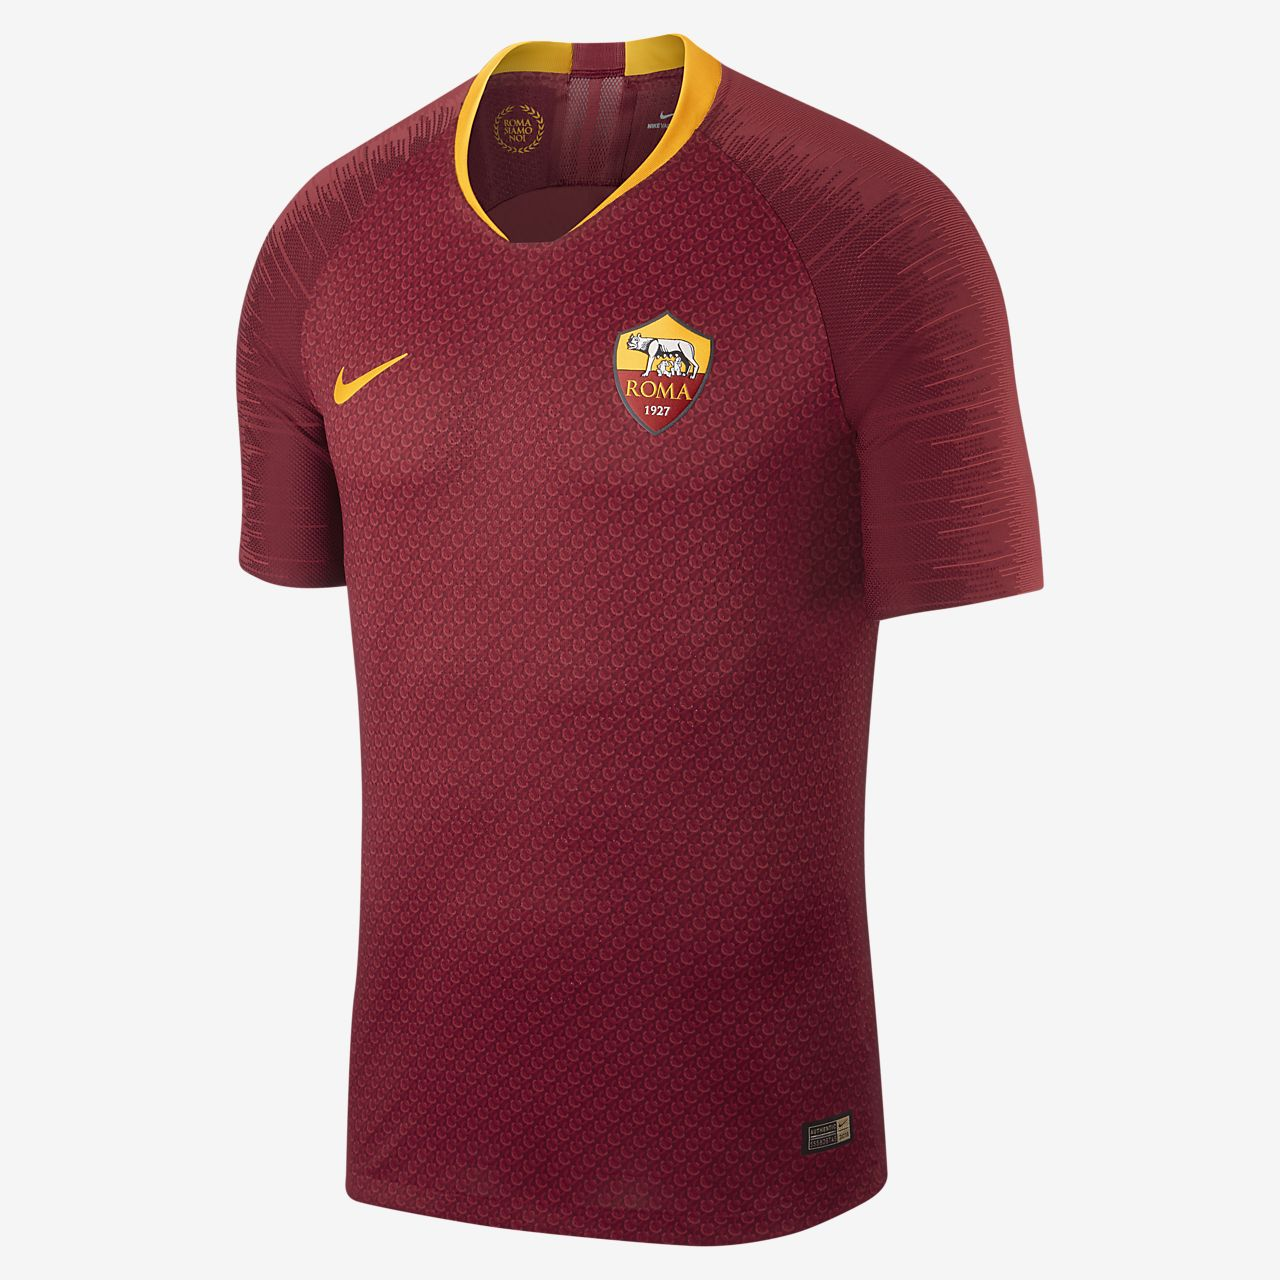 2018/19 A.S. Roma Vapor Match Home Men's Football Shirt